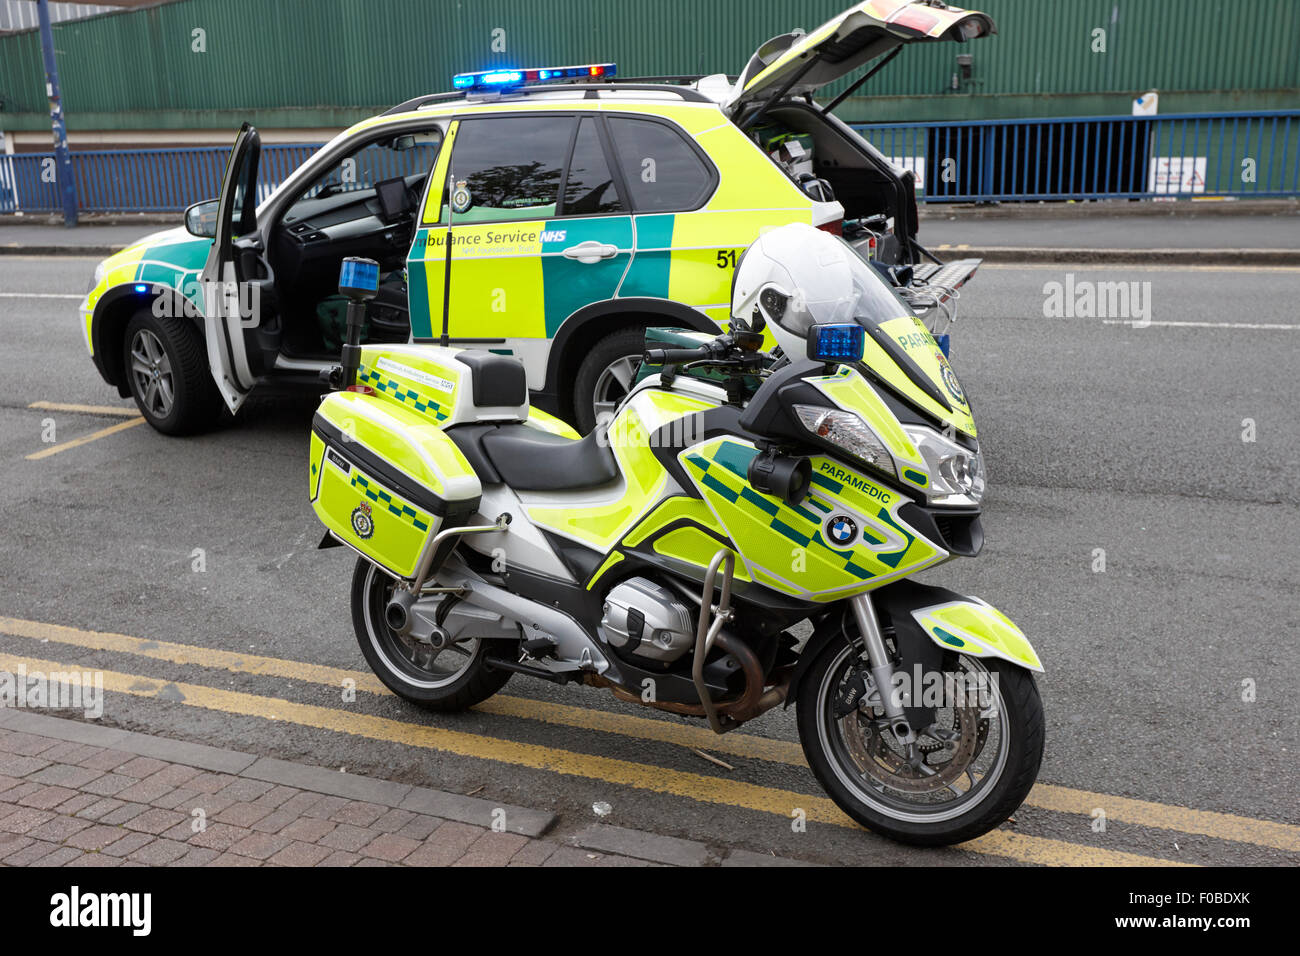 west midlands ambulance service paramedic motorbike and fast response vehicle on a call Birmingham UK - Stock Image